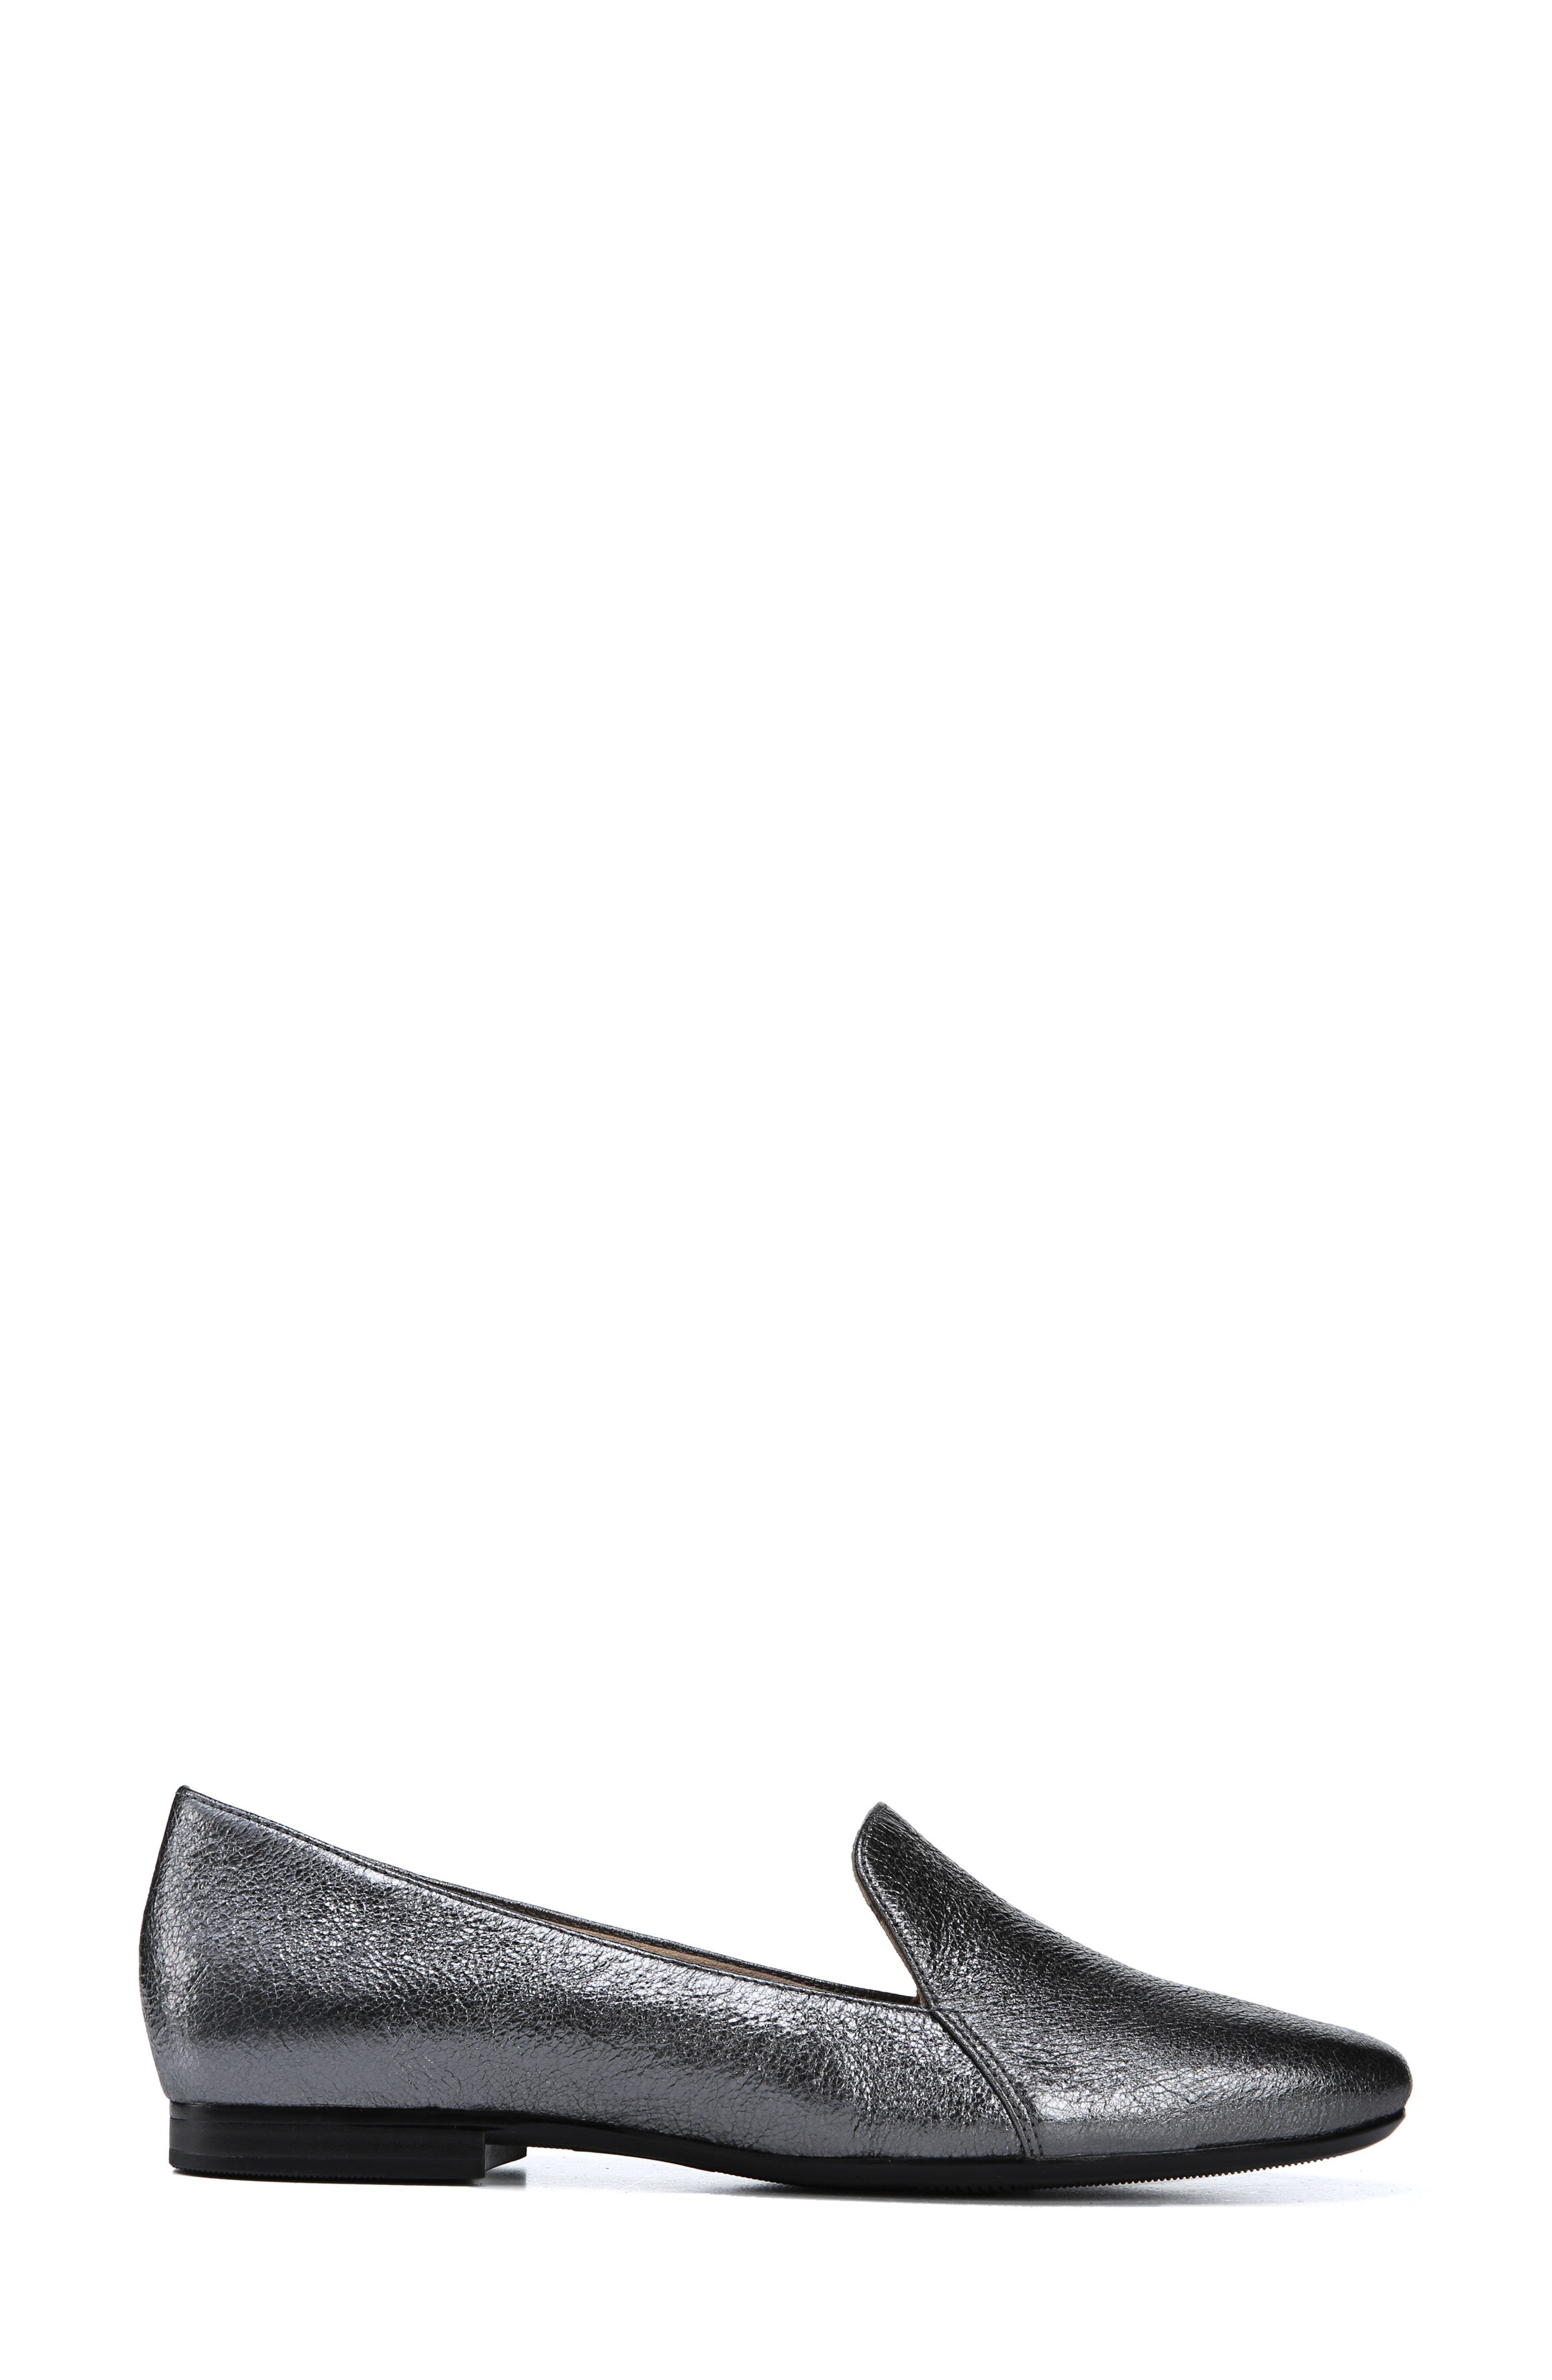 Emiline Flat Loafer,                             Alternate thumbnail 3, color,                             PEWTER LEATHER